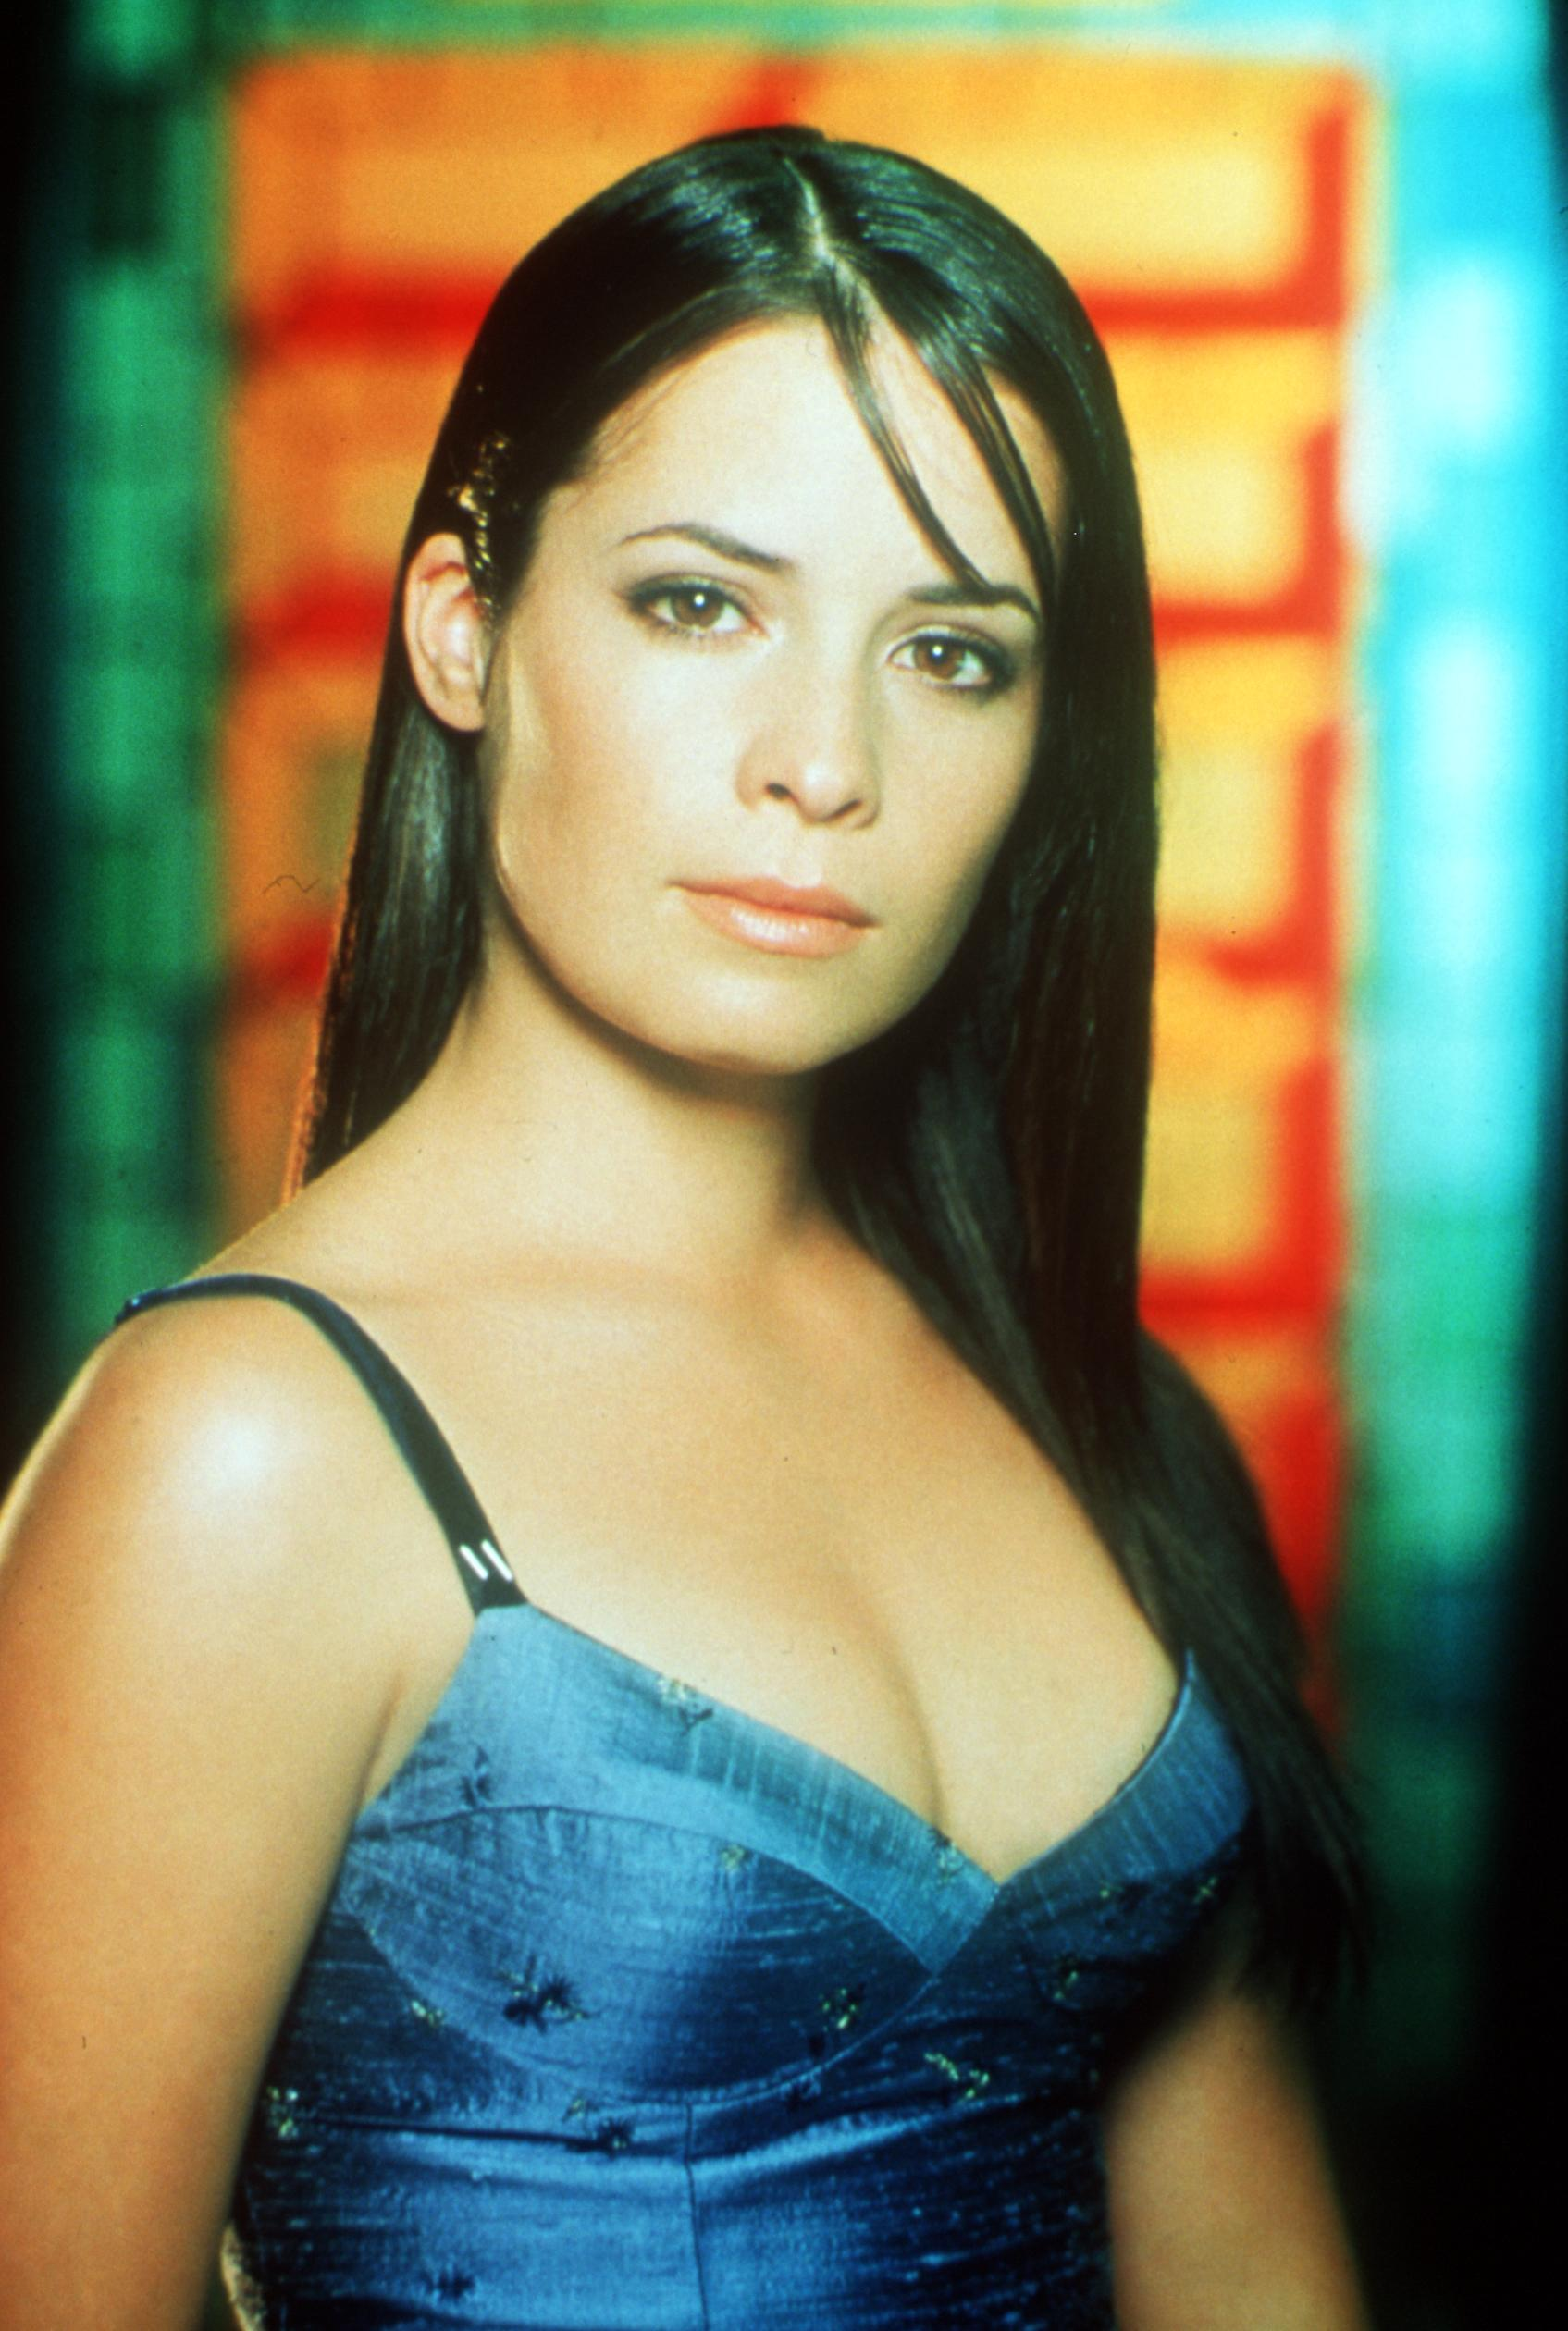 """Holly Marie Combs from the tv show """"Charmed"""" 1999 Paramount Pictures/Deliverd by: Online Usa, Inc 